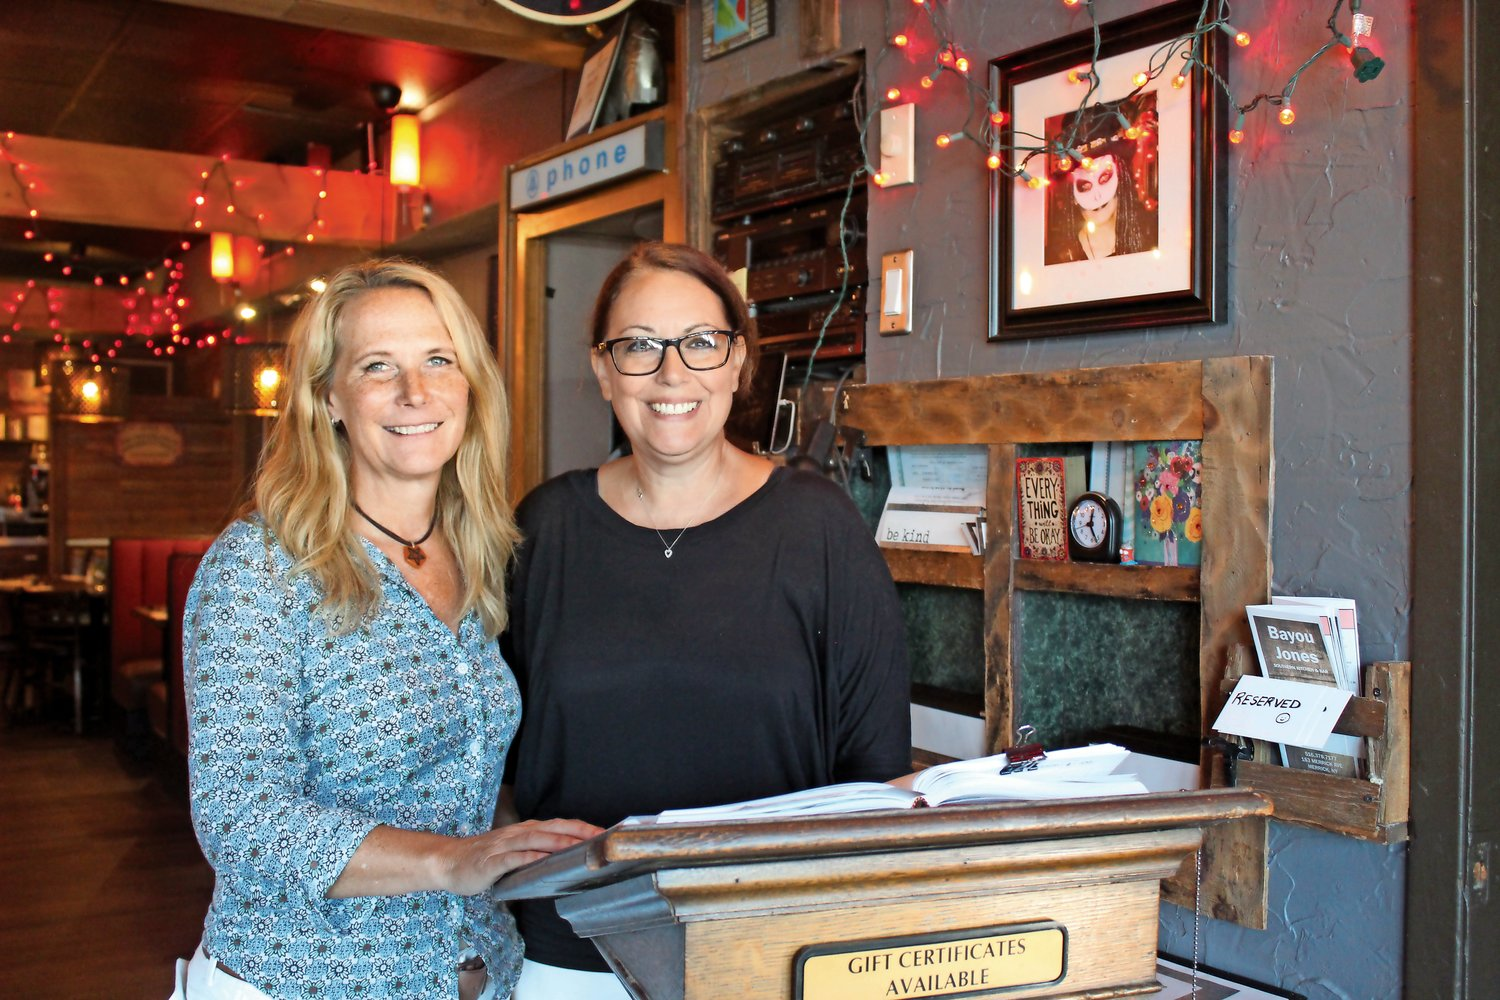 Bayou Jones co-owners Lisa Livermore, left, and Staci Tucci, opened the Cajun/Creole restaurant in June 2019, but because of the Covid-19 pandemic, it has closed permanently.